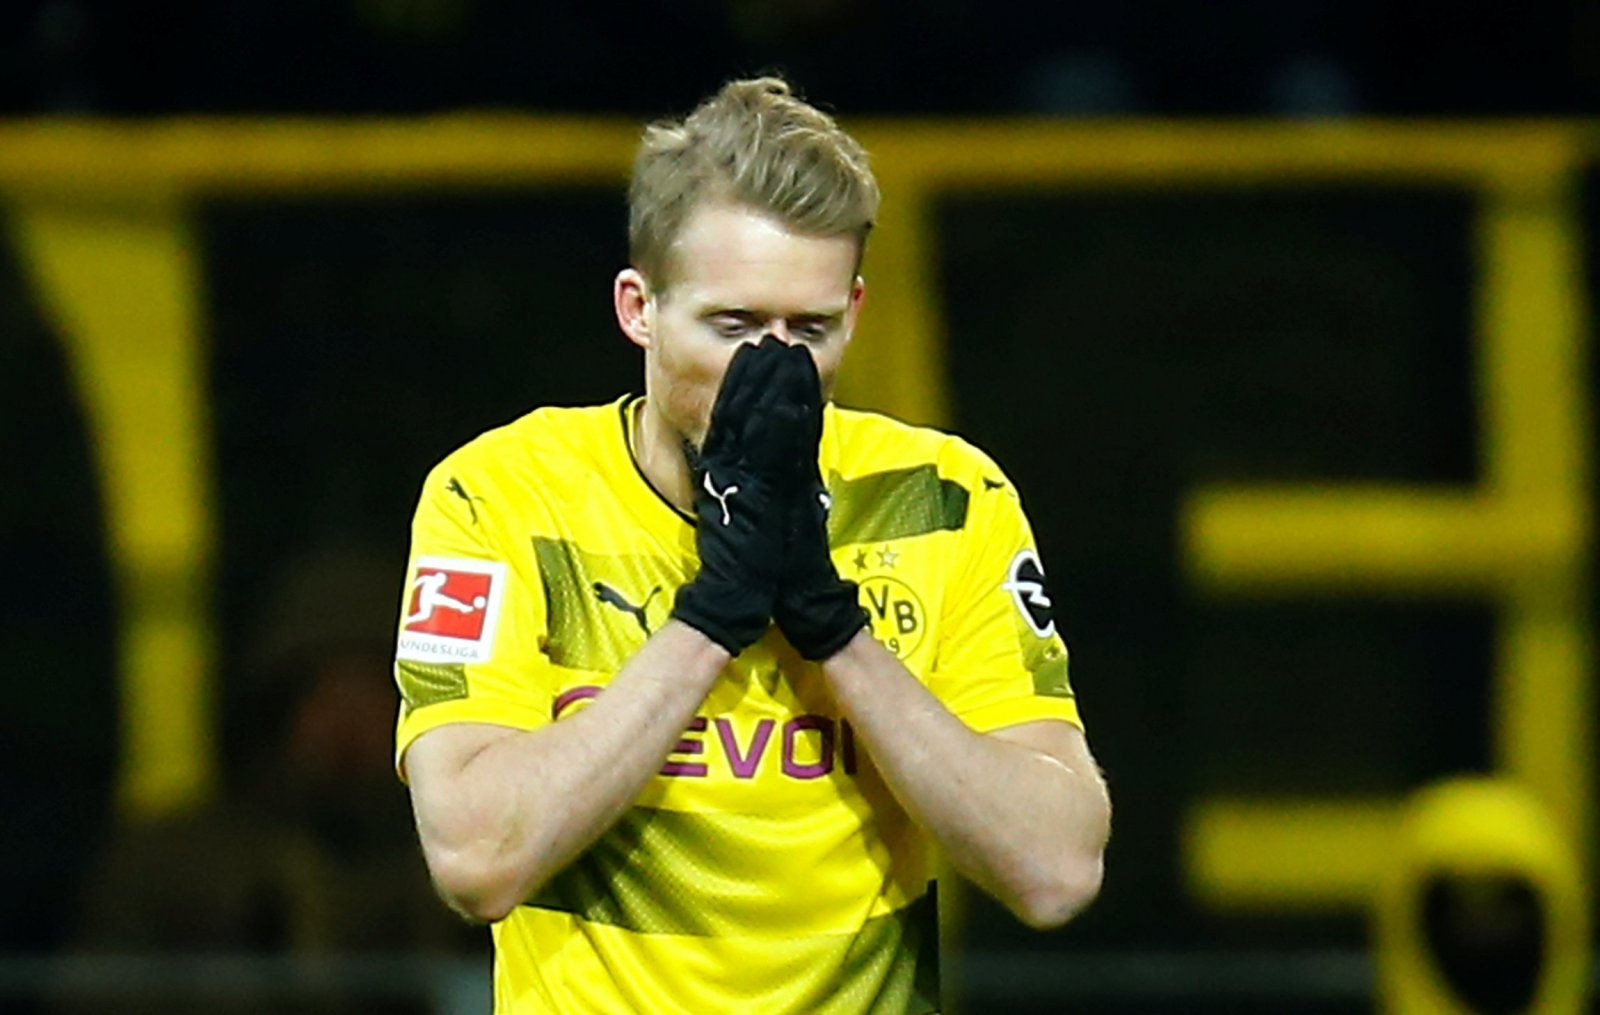 Borussia Dortmund swap deal would be awful business from Crystal Palace